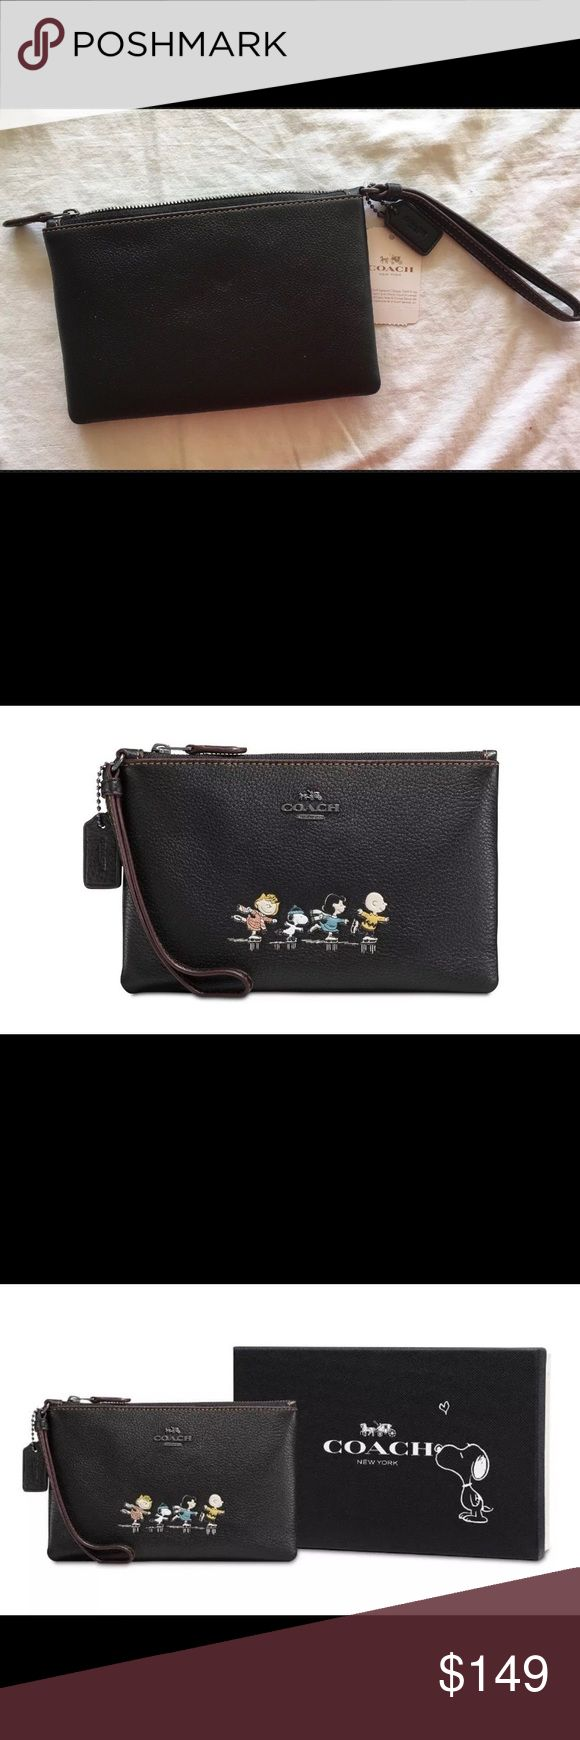 """Coach Boxed Sm. Snoopy Peanuts Wristlet Black NWT Coach Snoopy small black pebble leather wristlet can hold all your essentials- but especially, it will hold and capture your heart!! Snoopy, Charlie Brown, Lucy & Sally characters depicted on front. 7-1/2""""W x 4-3/4""""H 6""""L wristlet strap Top-zip closure Dark antique nickel-tone exterior hardware 2 credit card slots & fits an iPhone or Android Pebble leather, lining: fabric.       Imported Comes packaged in a COACH gift box Coach Bags Clutches…"""